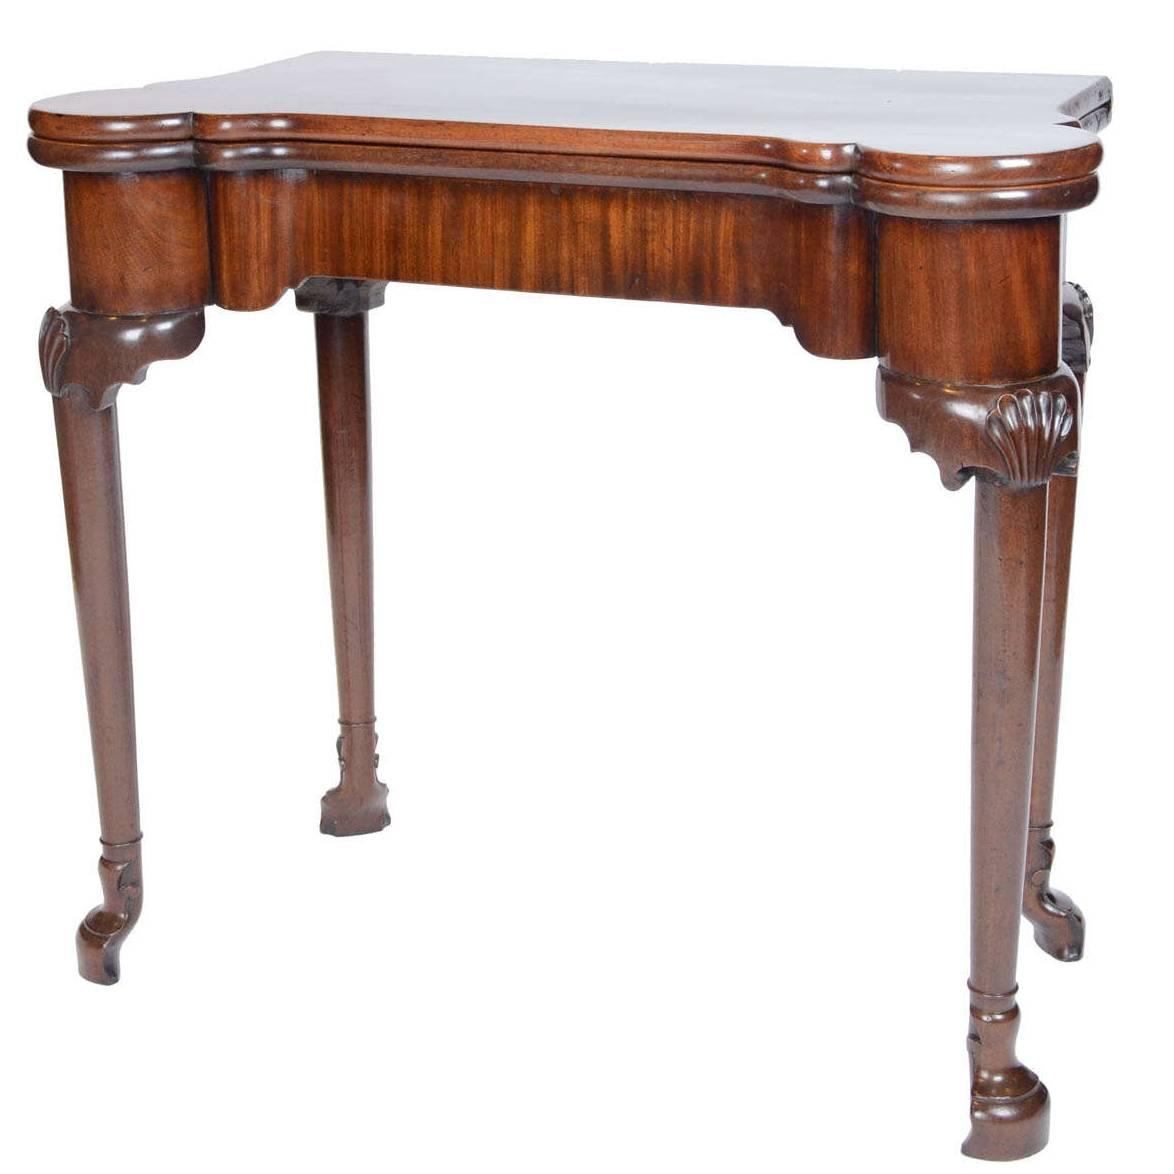 Fine And Rare George Ii Period Irish Mahogany Folding Card Table John Bly Antiques Five Generations Of Dealing In Fine Antiques